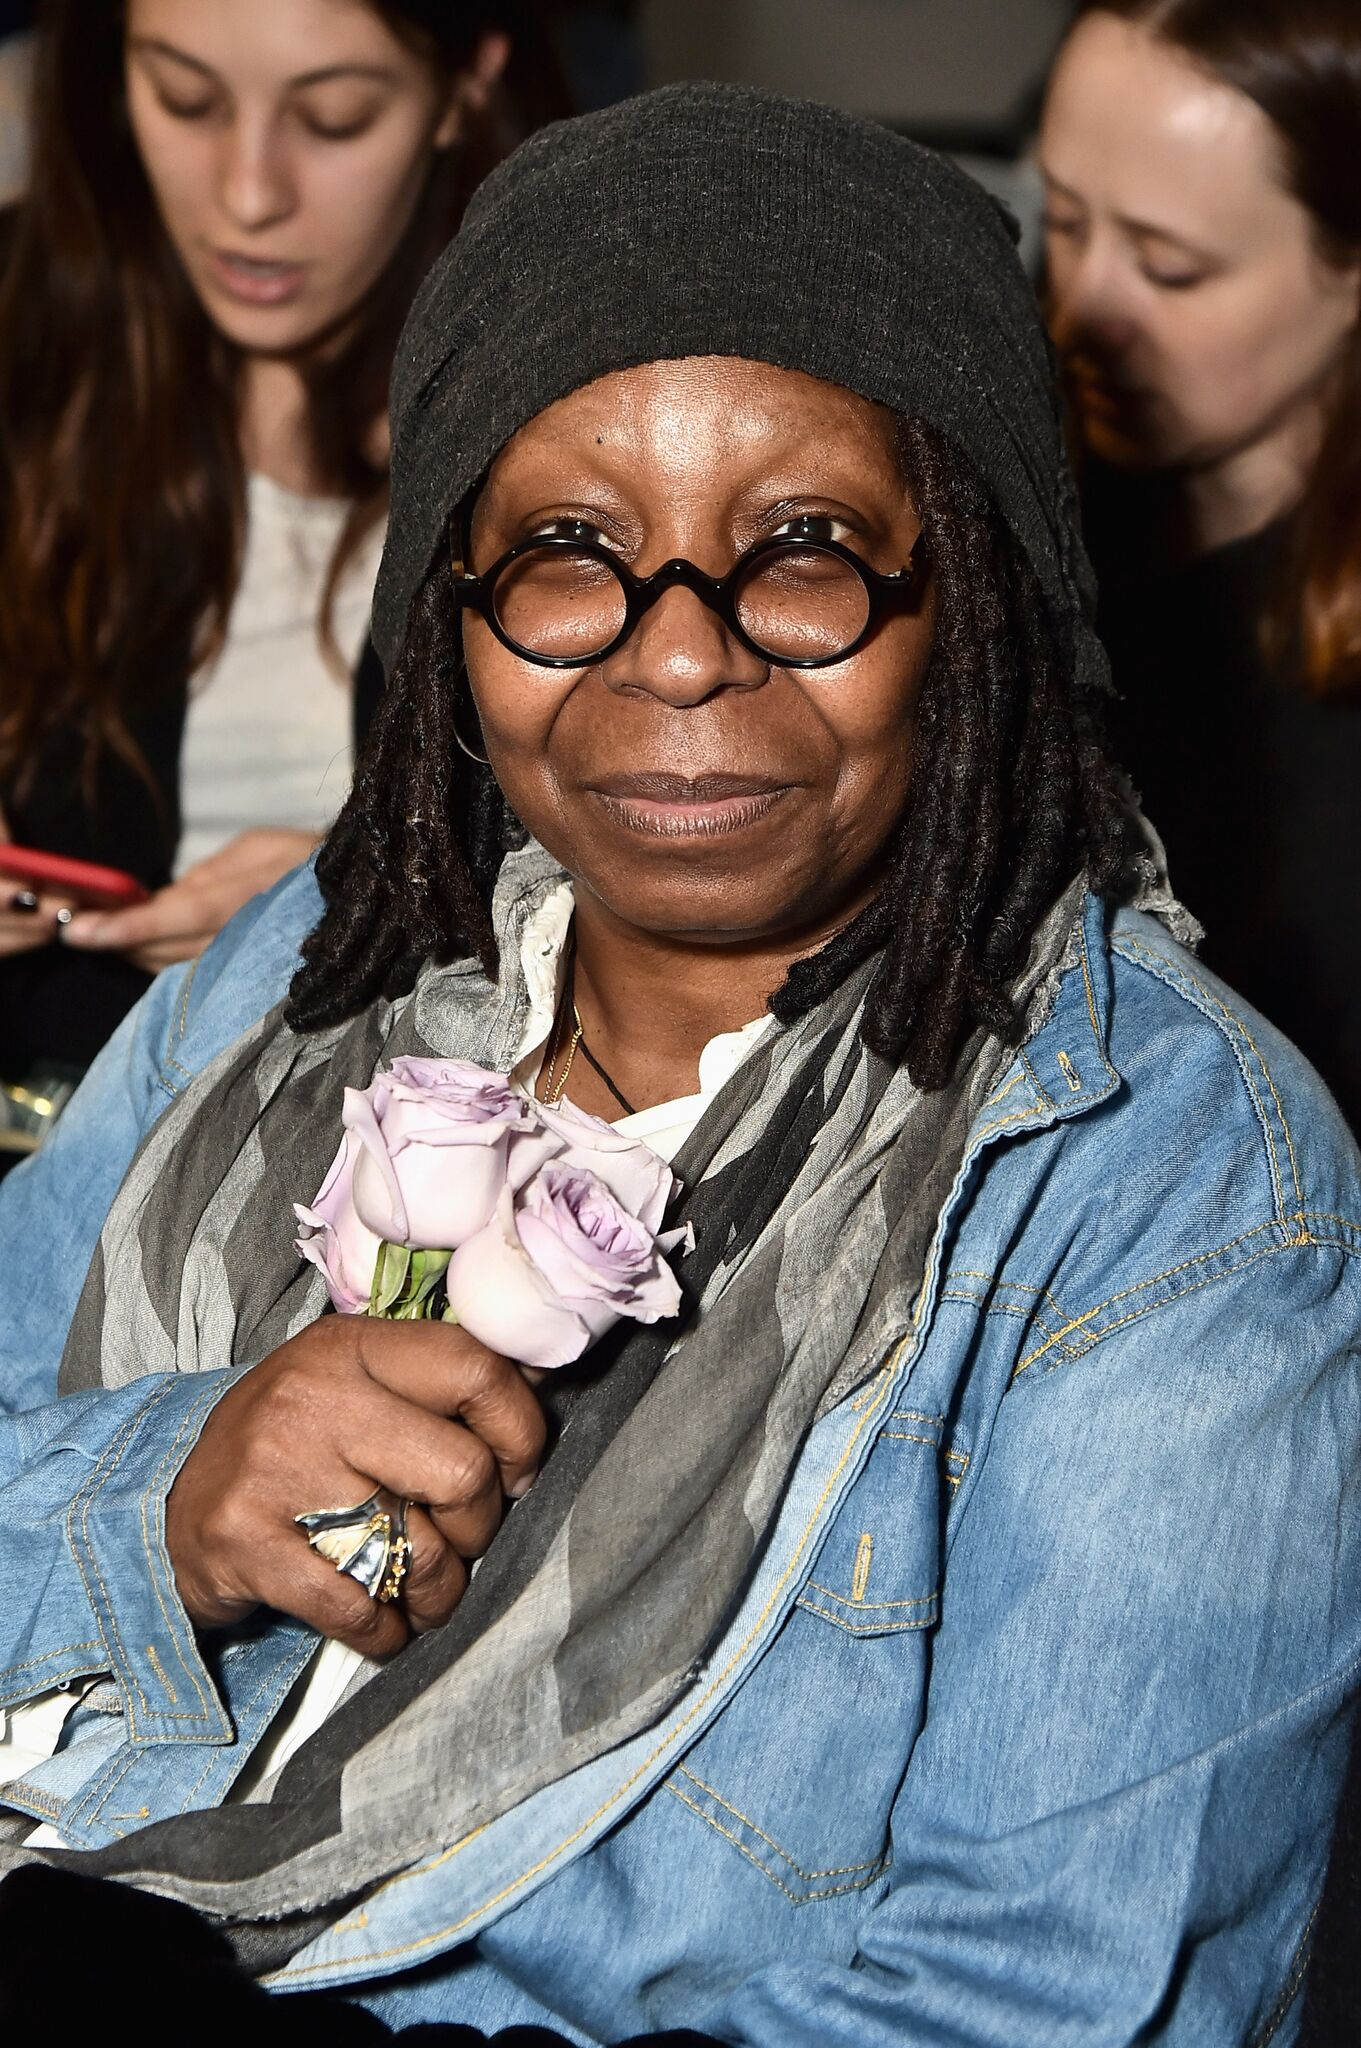 Whoopi Goldberg at Brock Collection during New York Fashion Week | Getty Images